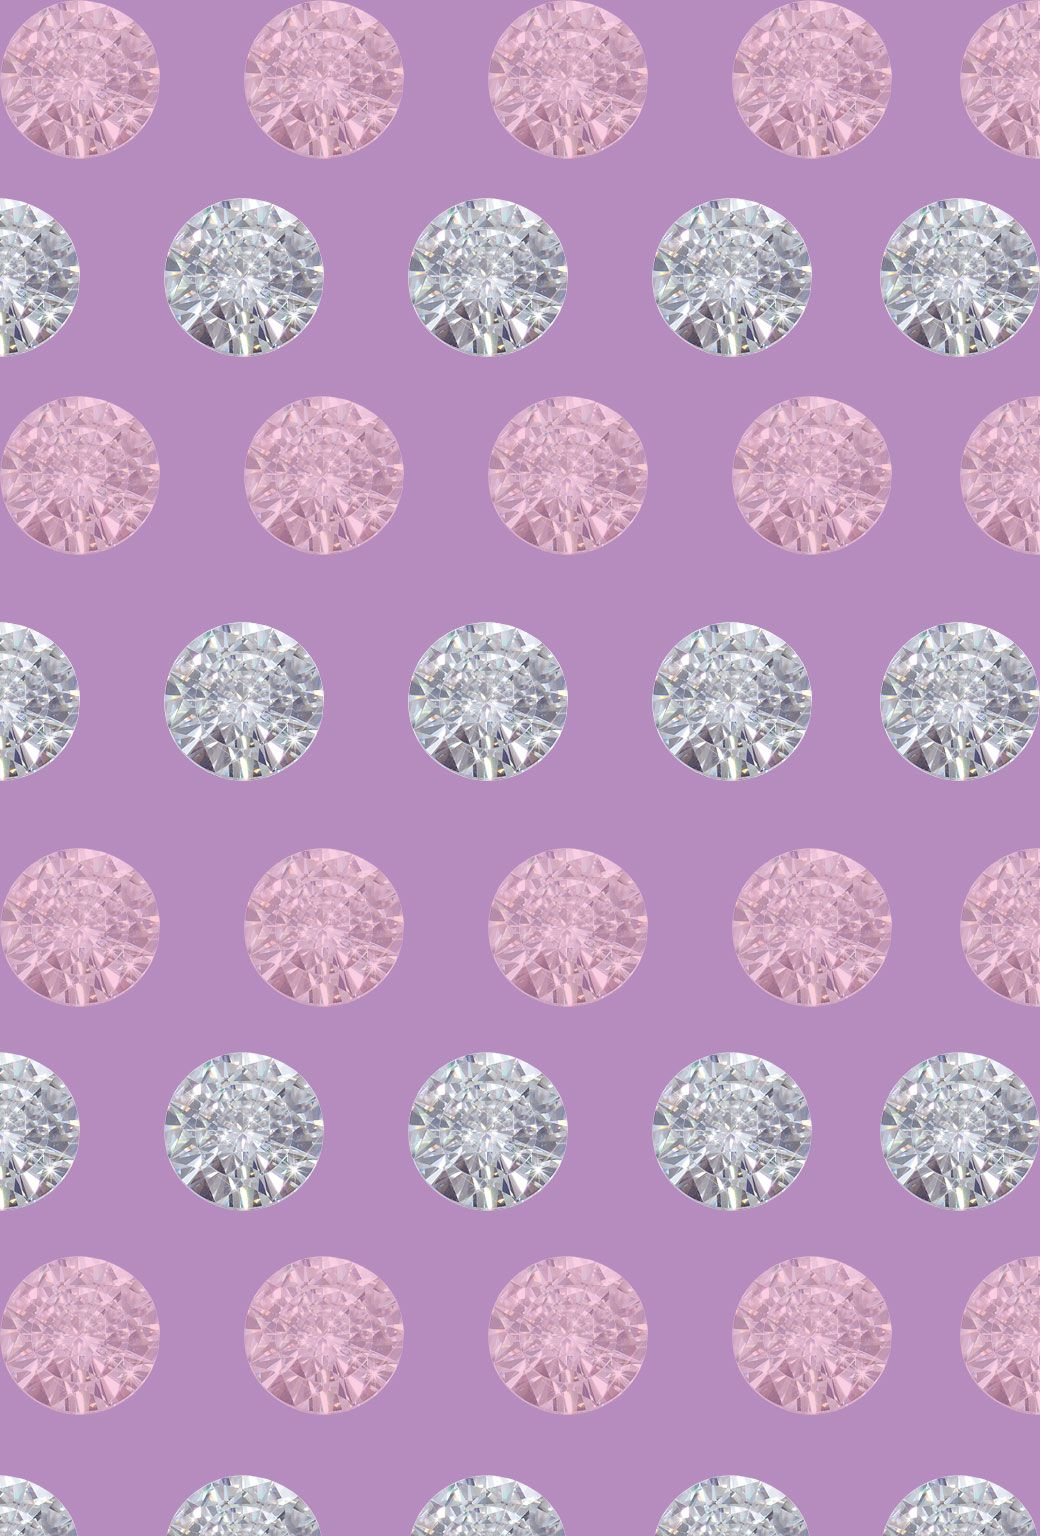 gem background tumblr - Google Search   Backgrounds!   Pinterest   Gems for Background Tumblr Pattern Purple  29dqh